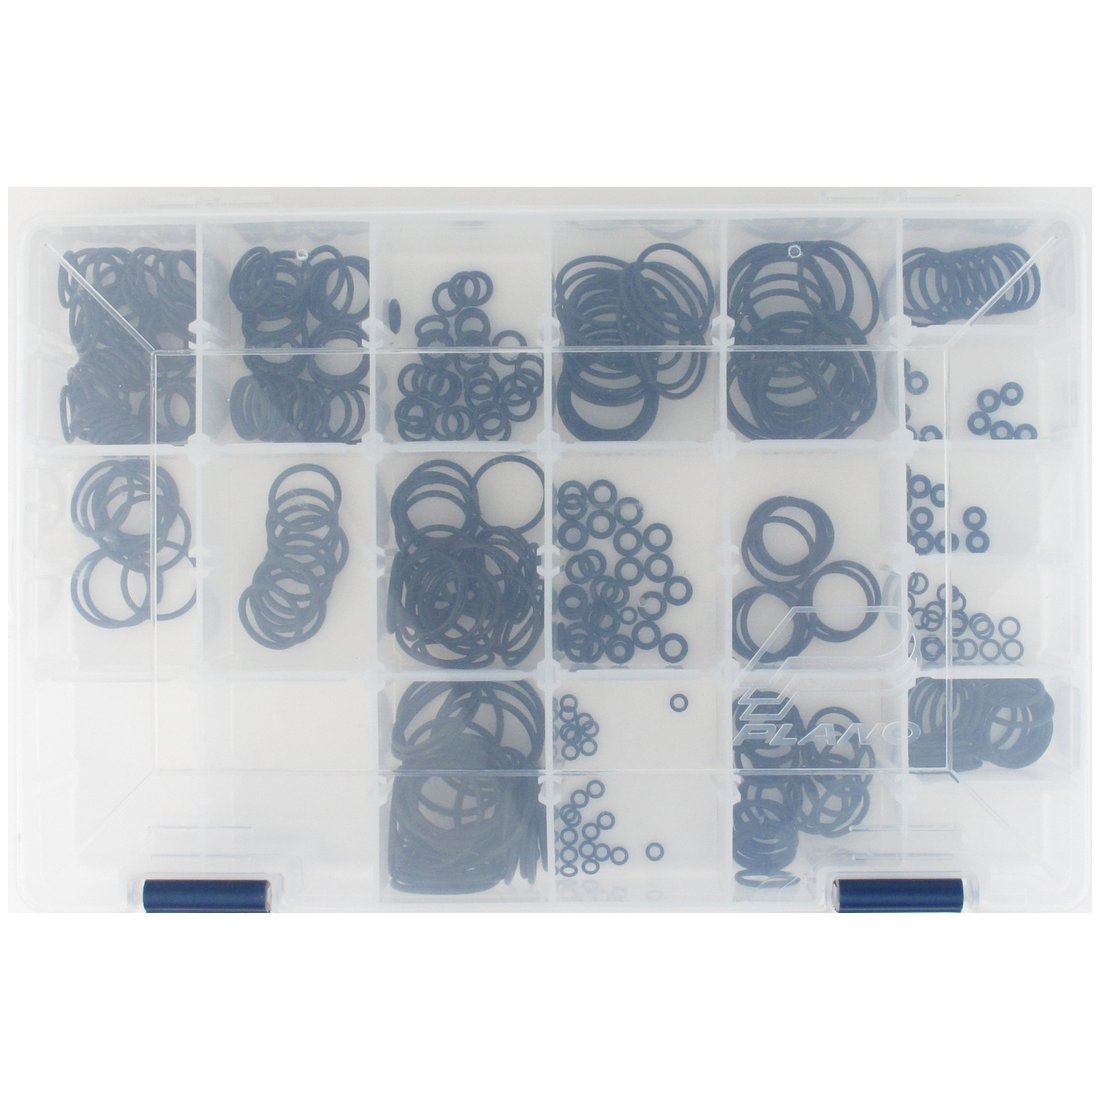 RPM Bulk Oring Kit for SmartParts EOS, Epiphany, Ion, IonXE, SP8, SP1, and Vibe, and GoG eNVy, eXTCy, eNMEy, and G1 - 10 x Complete Set of Economy O-Rings In a Reclosable Storage Box by Reliable Performance Modifications